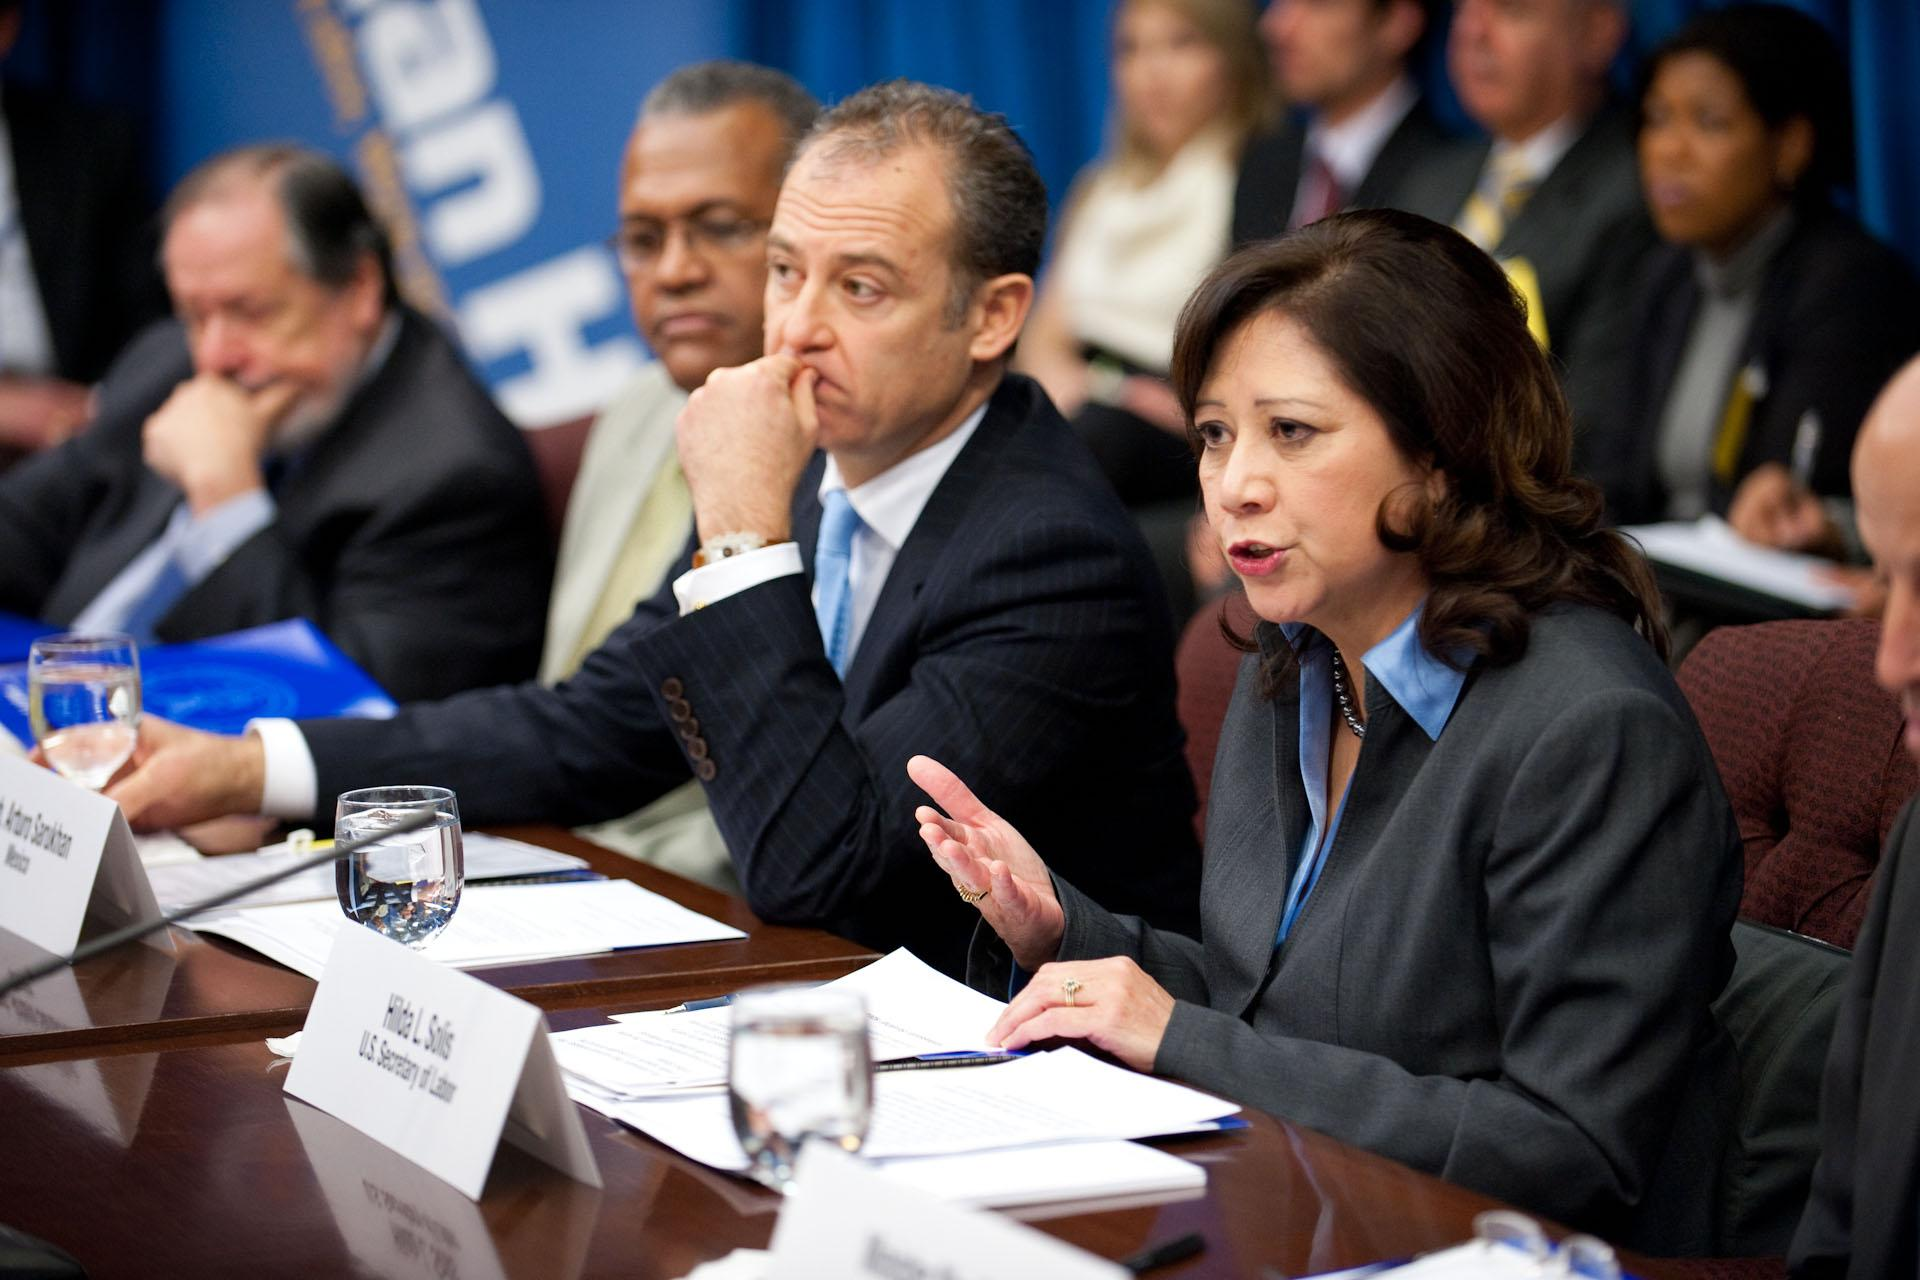 Pictured: U.S. Secretary of Labour Hilda Solis and Mexican Ambassador Arturo Sarukhan